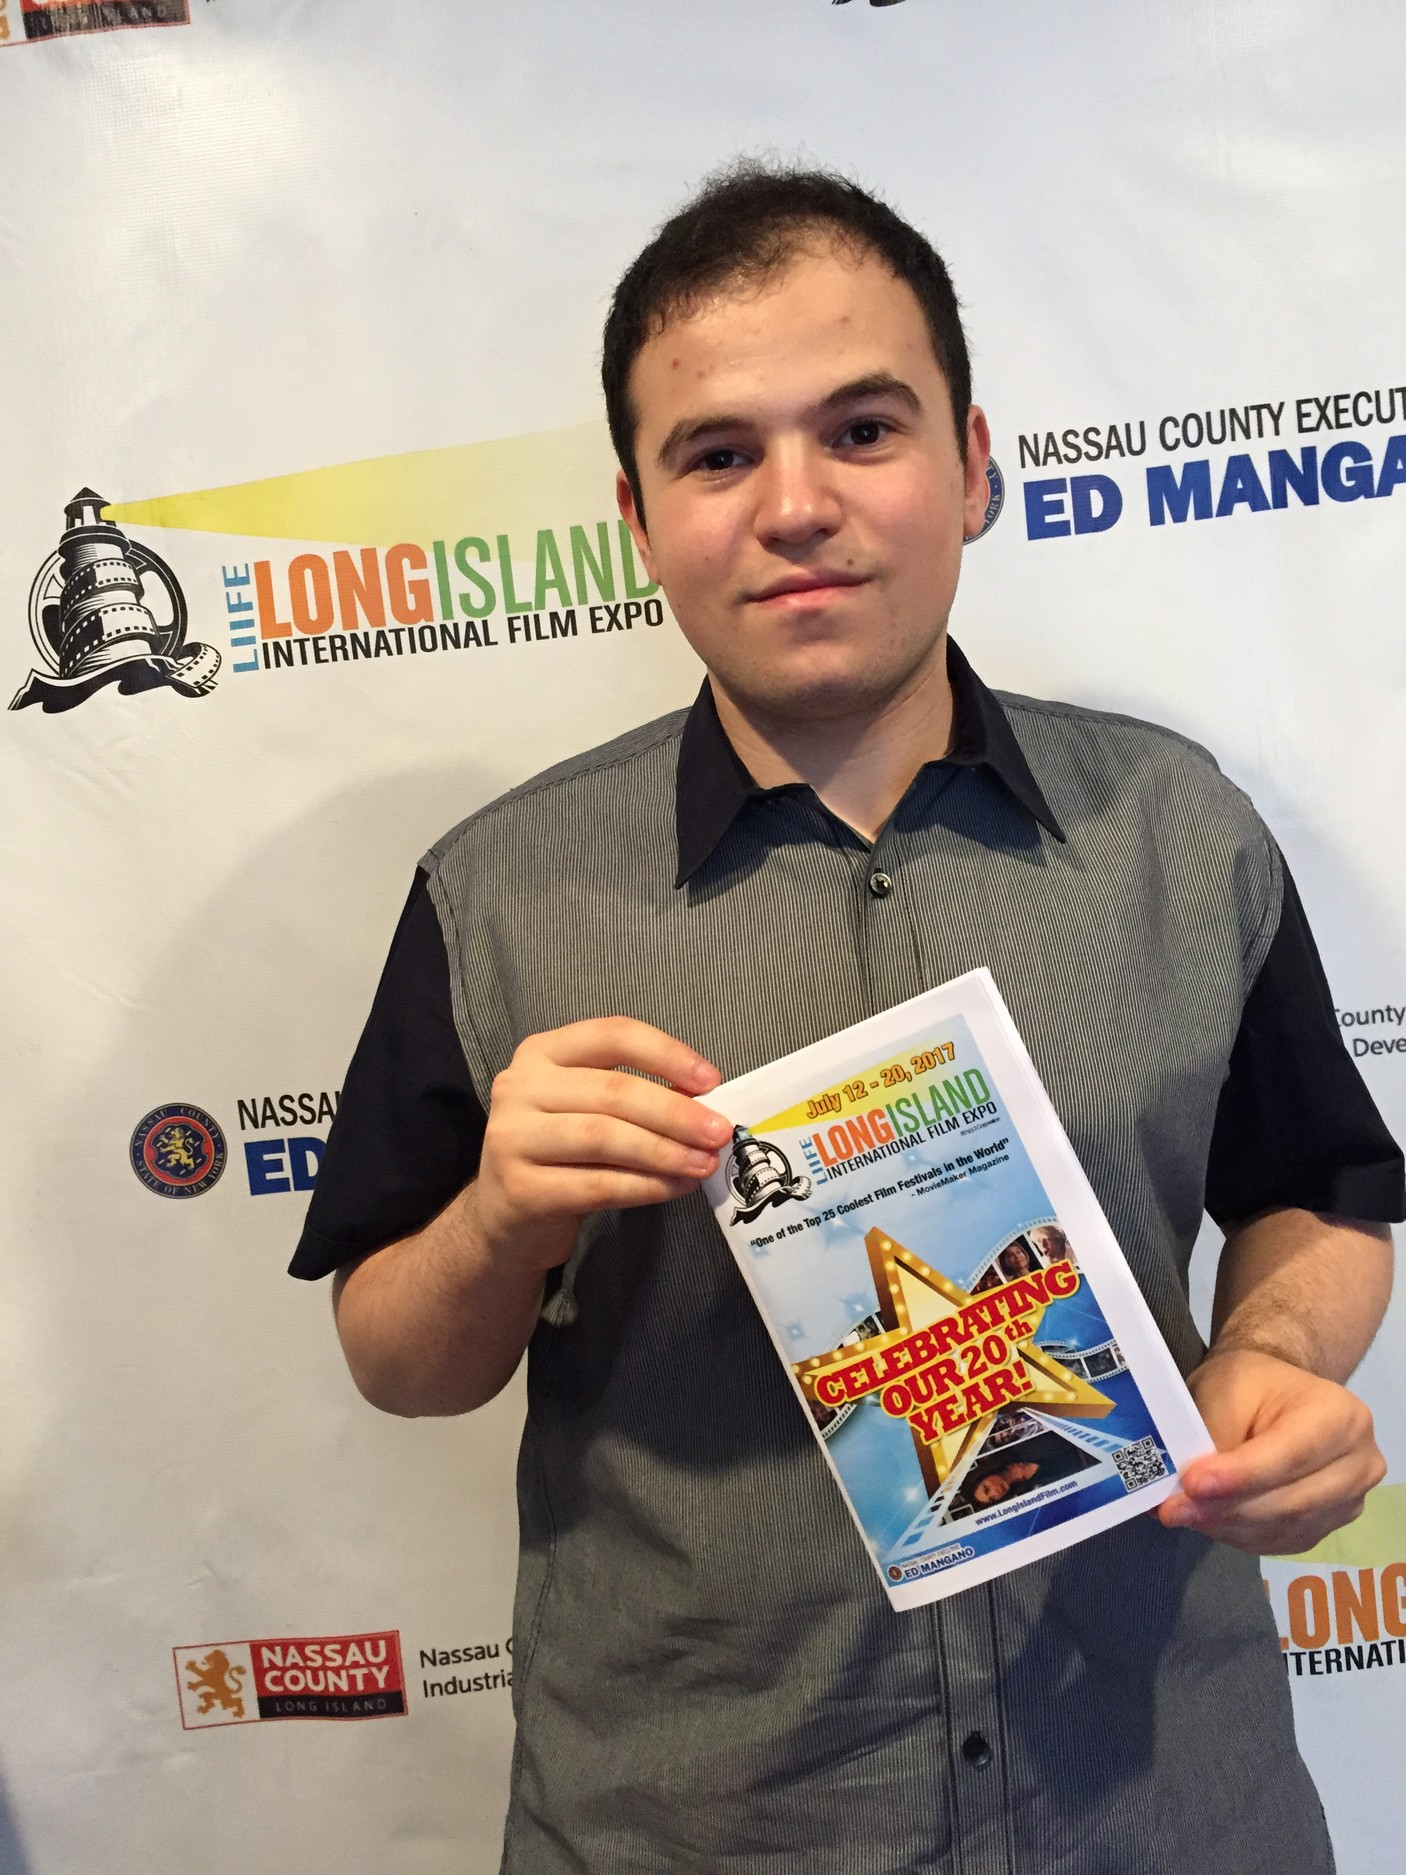 Max Hechtman at the Long Island International Film Expo.